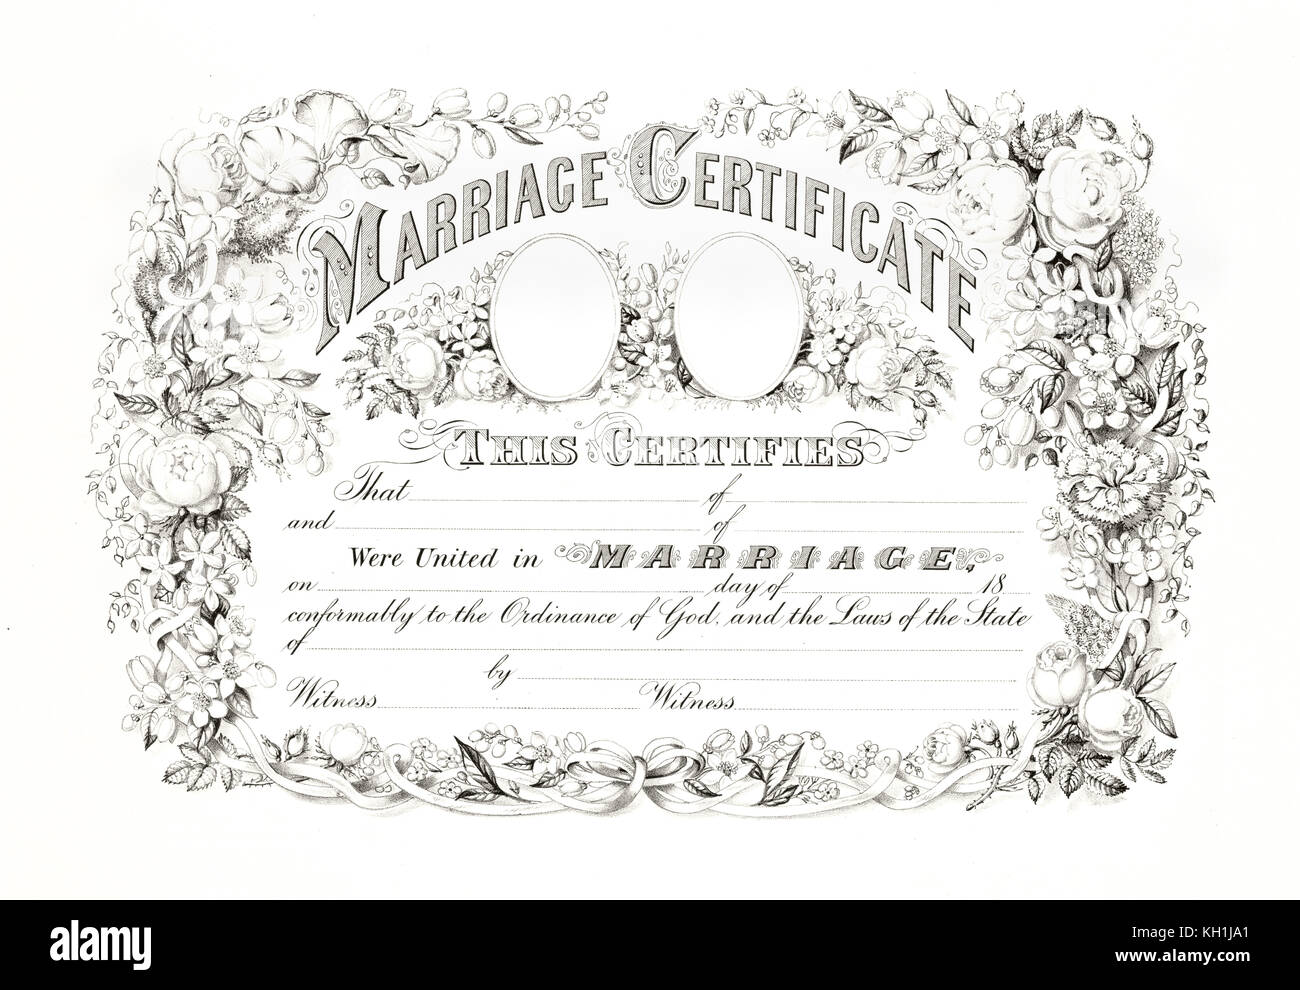 Marriage certificate cut out stock images pictures alamy reproduction of antique marriage certificate with floral border by currier ives publ 1betcityfo Gallery